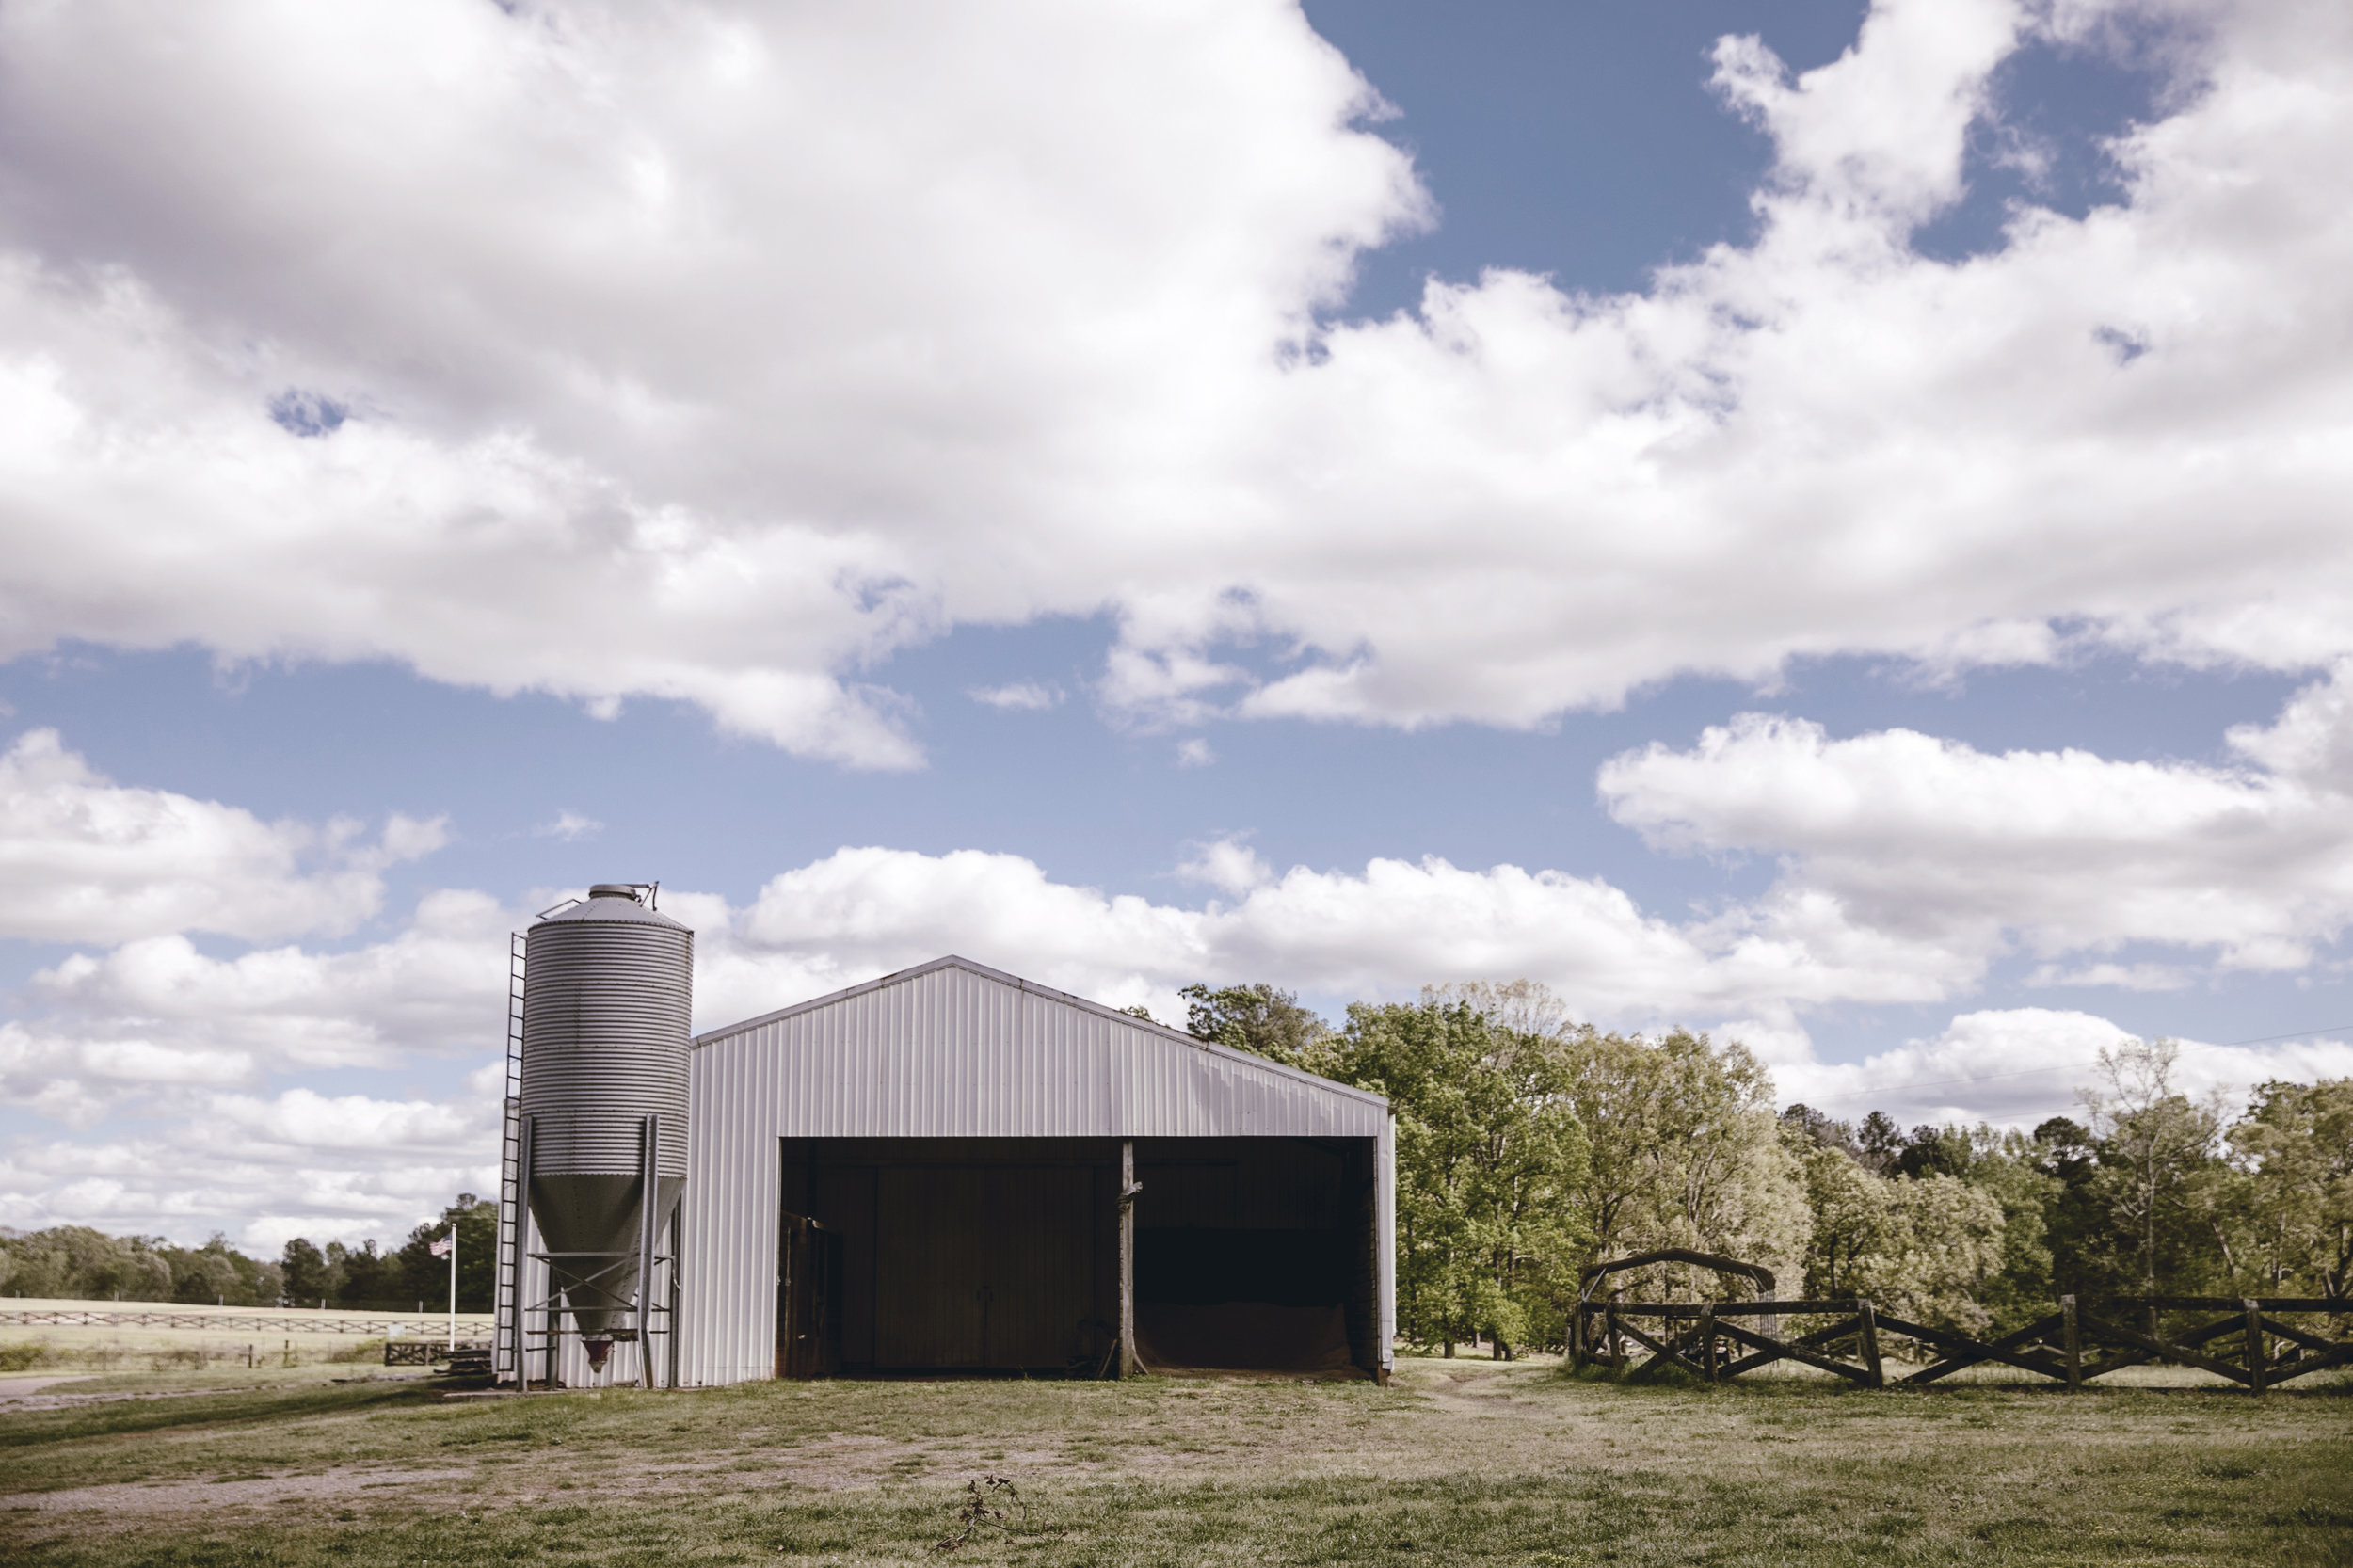 barn and silo with wooden cross buck fence at the farm / heirloomed